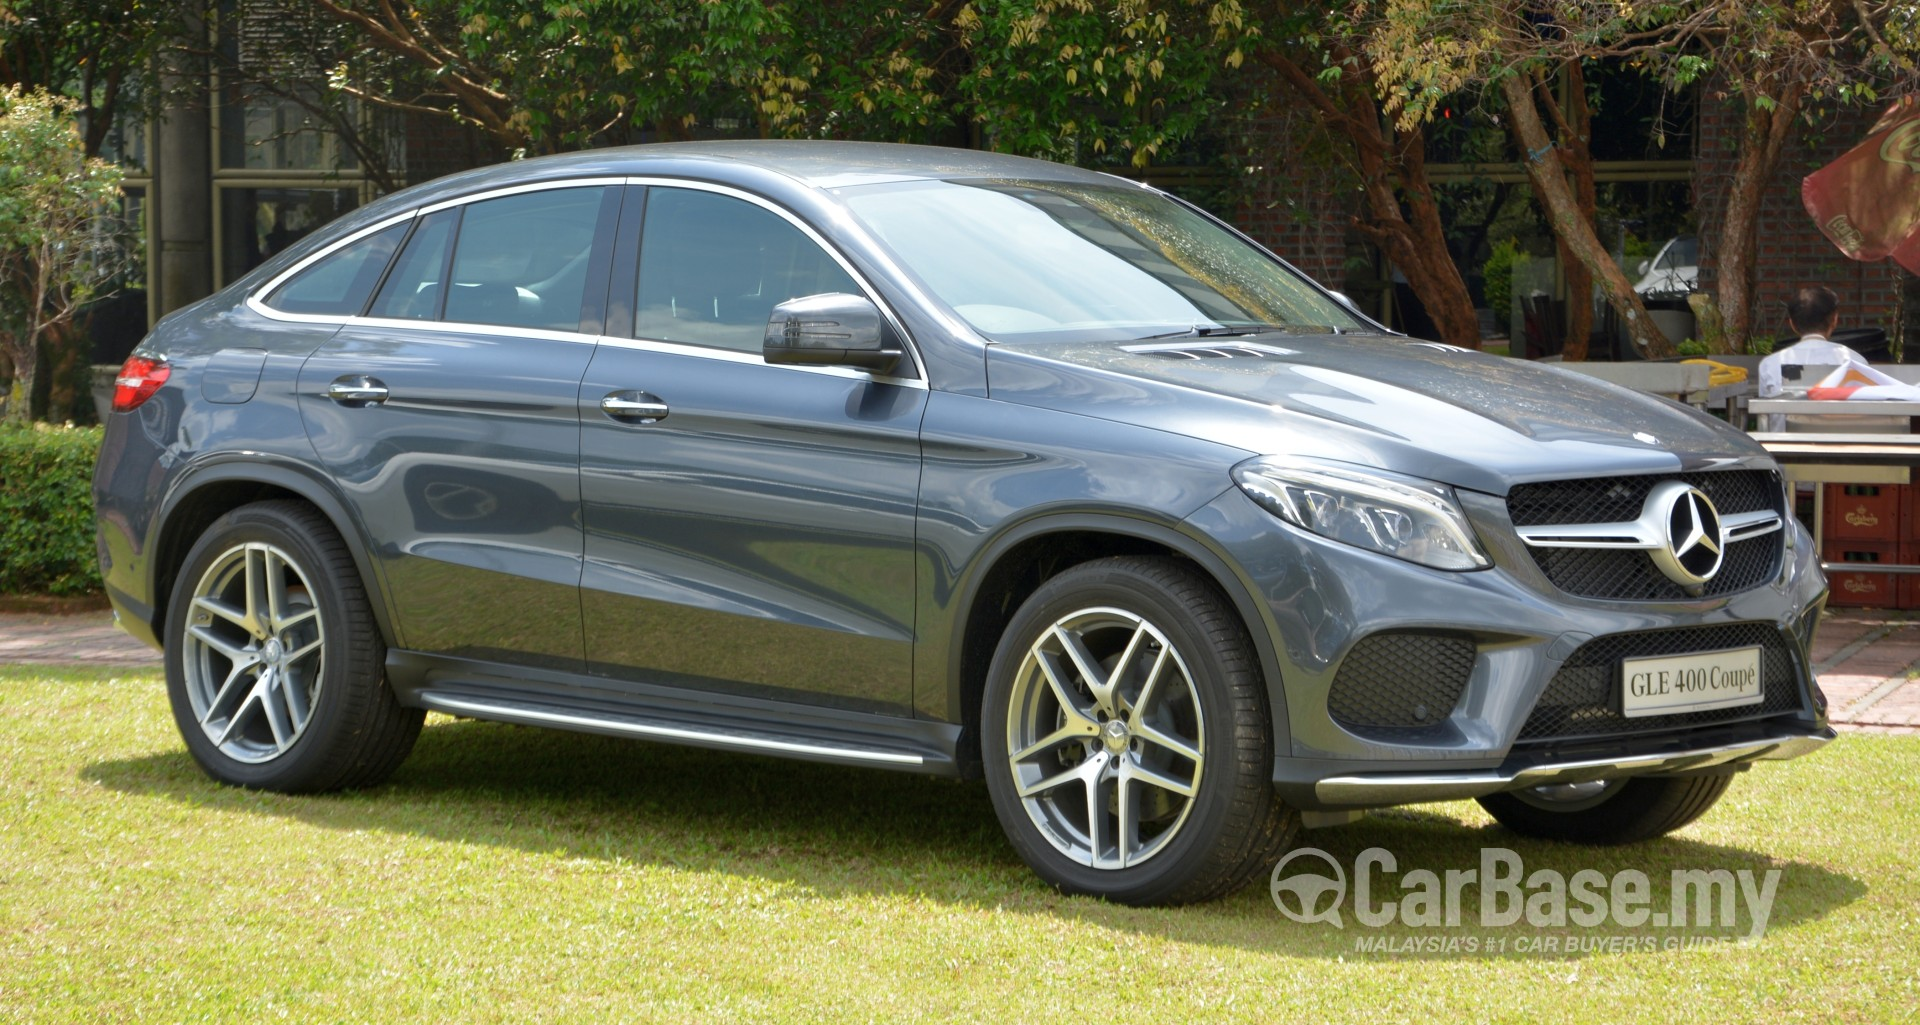 Glc Coupe Price >> Mercedes-Benz GLE Coupe C292 (2016) Exterior Image #26554